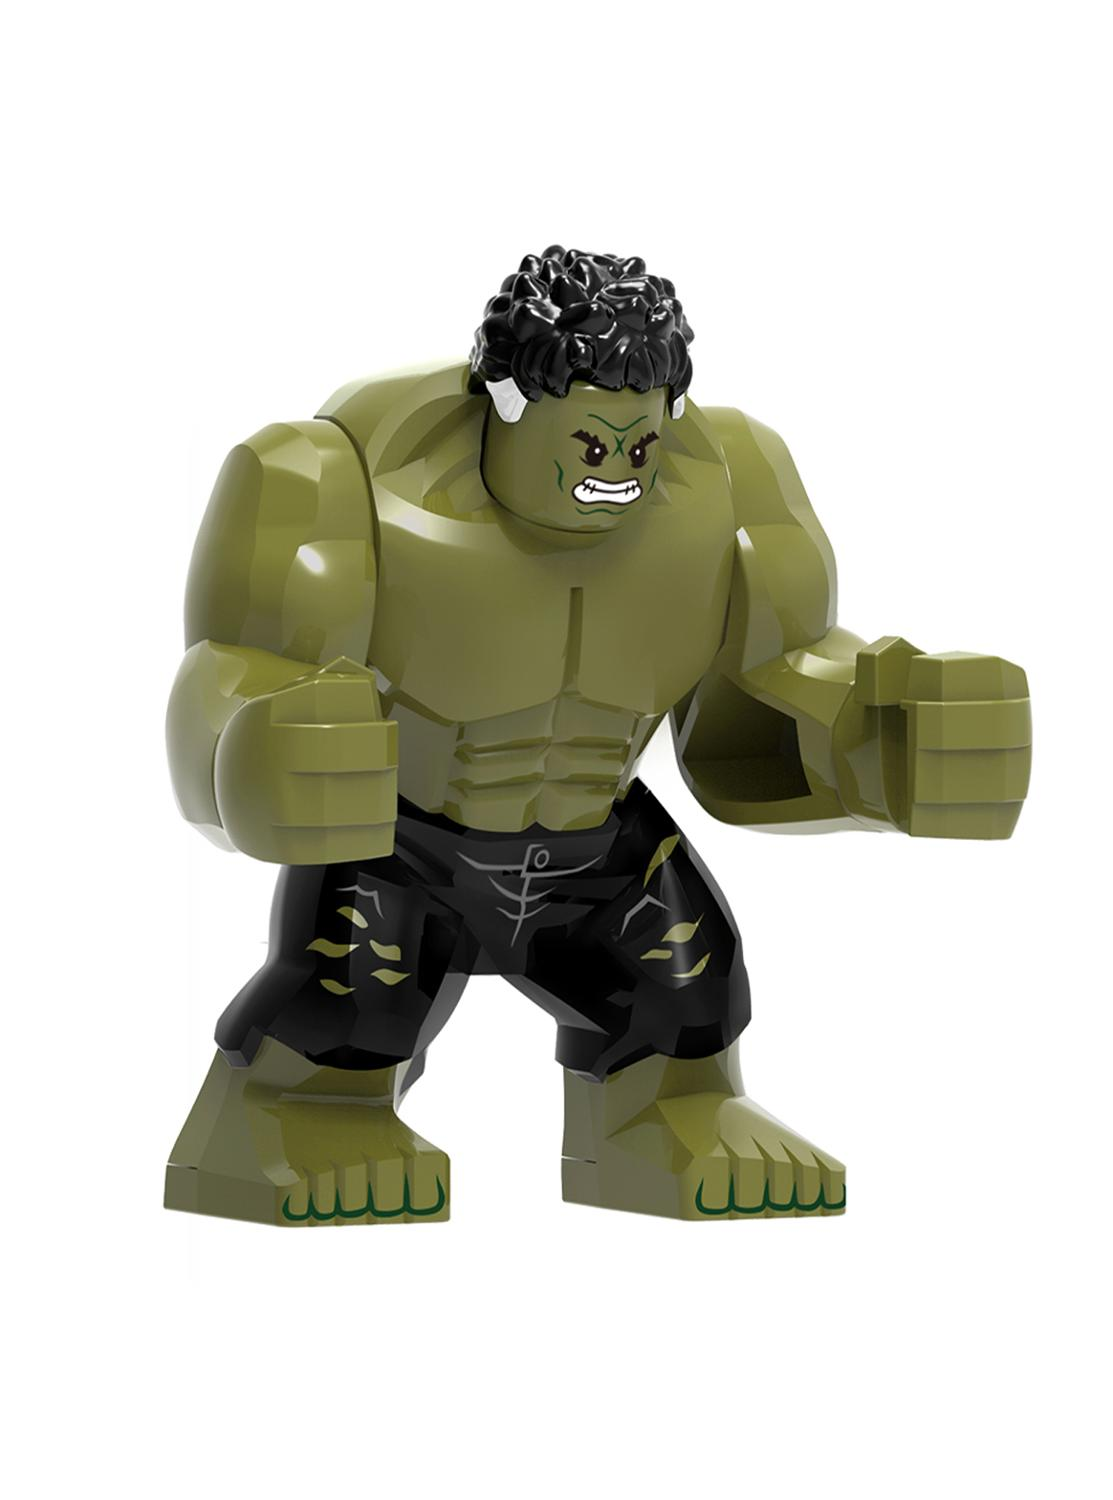 Image 4 - Big Size Hulk Marvel Avengers Endgame legoed Superheroes Hulkbuster Ironman Spiderman Thanos Building Blocks bricks Toy For Kids-in Blocks from Toys & Hobbies